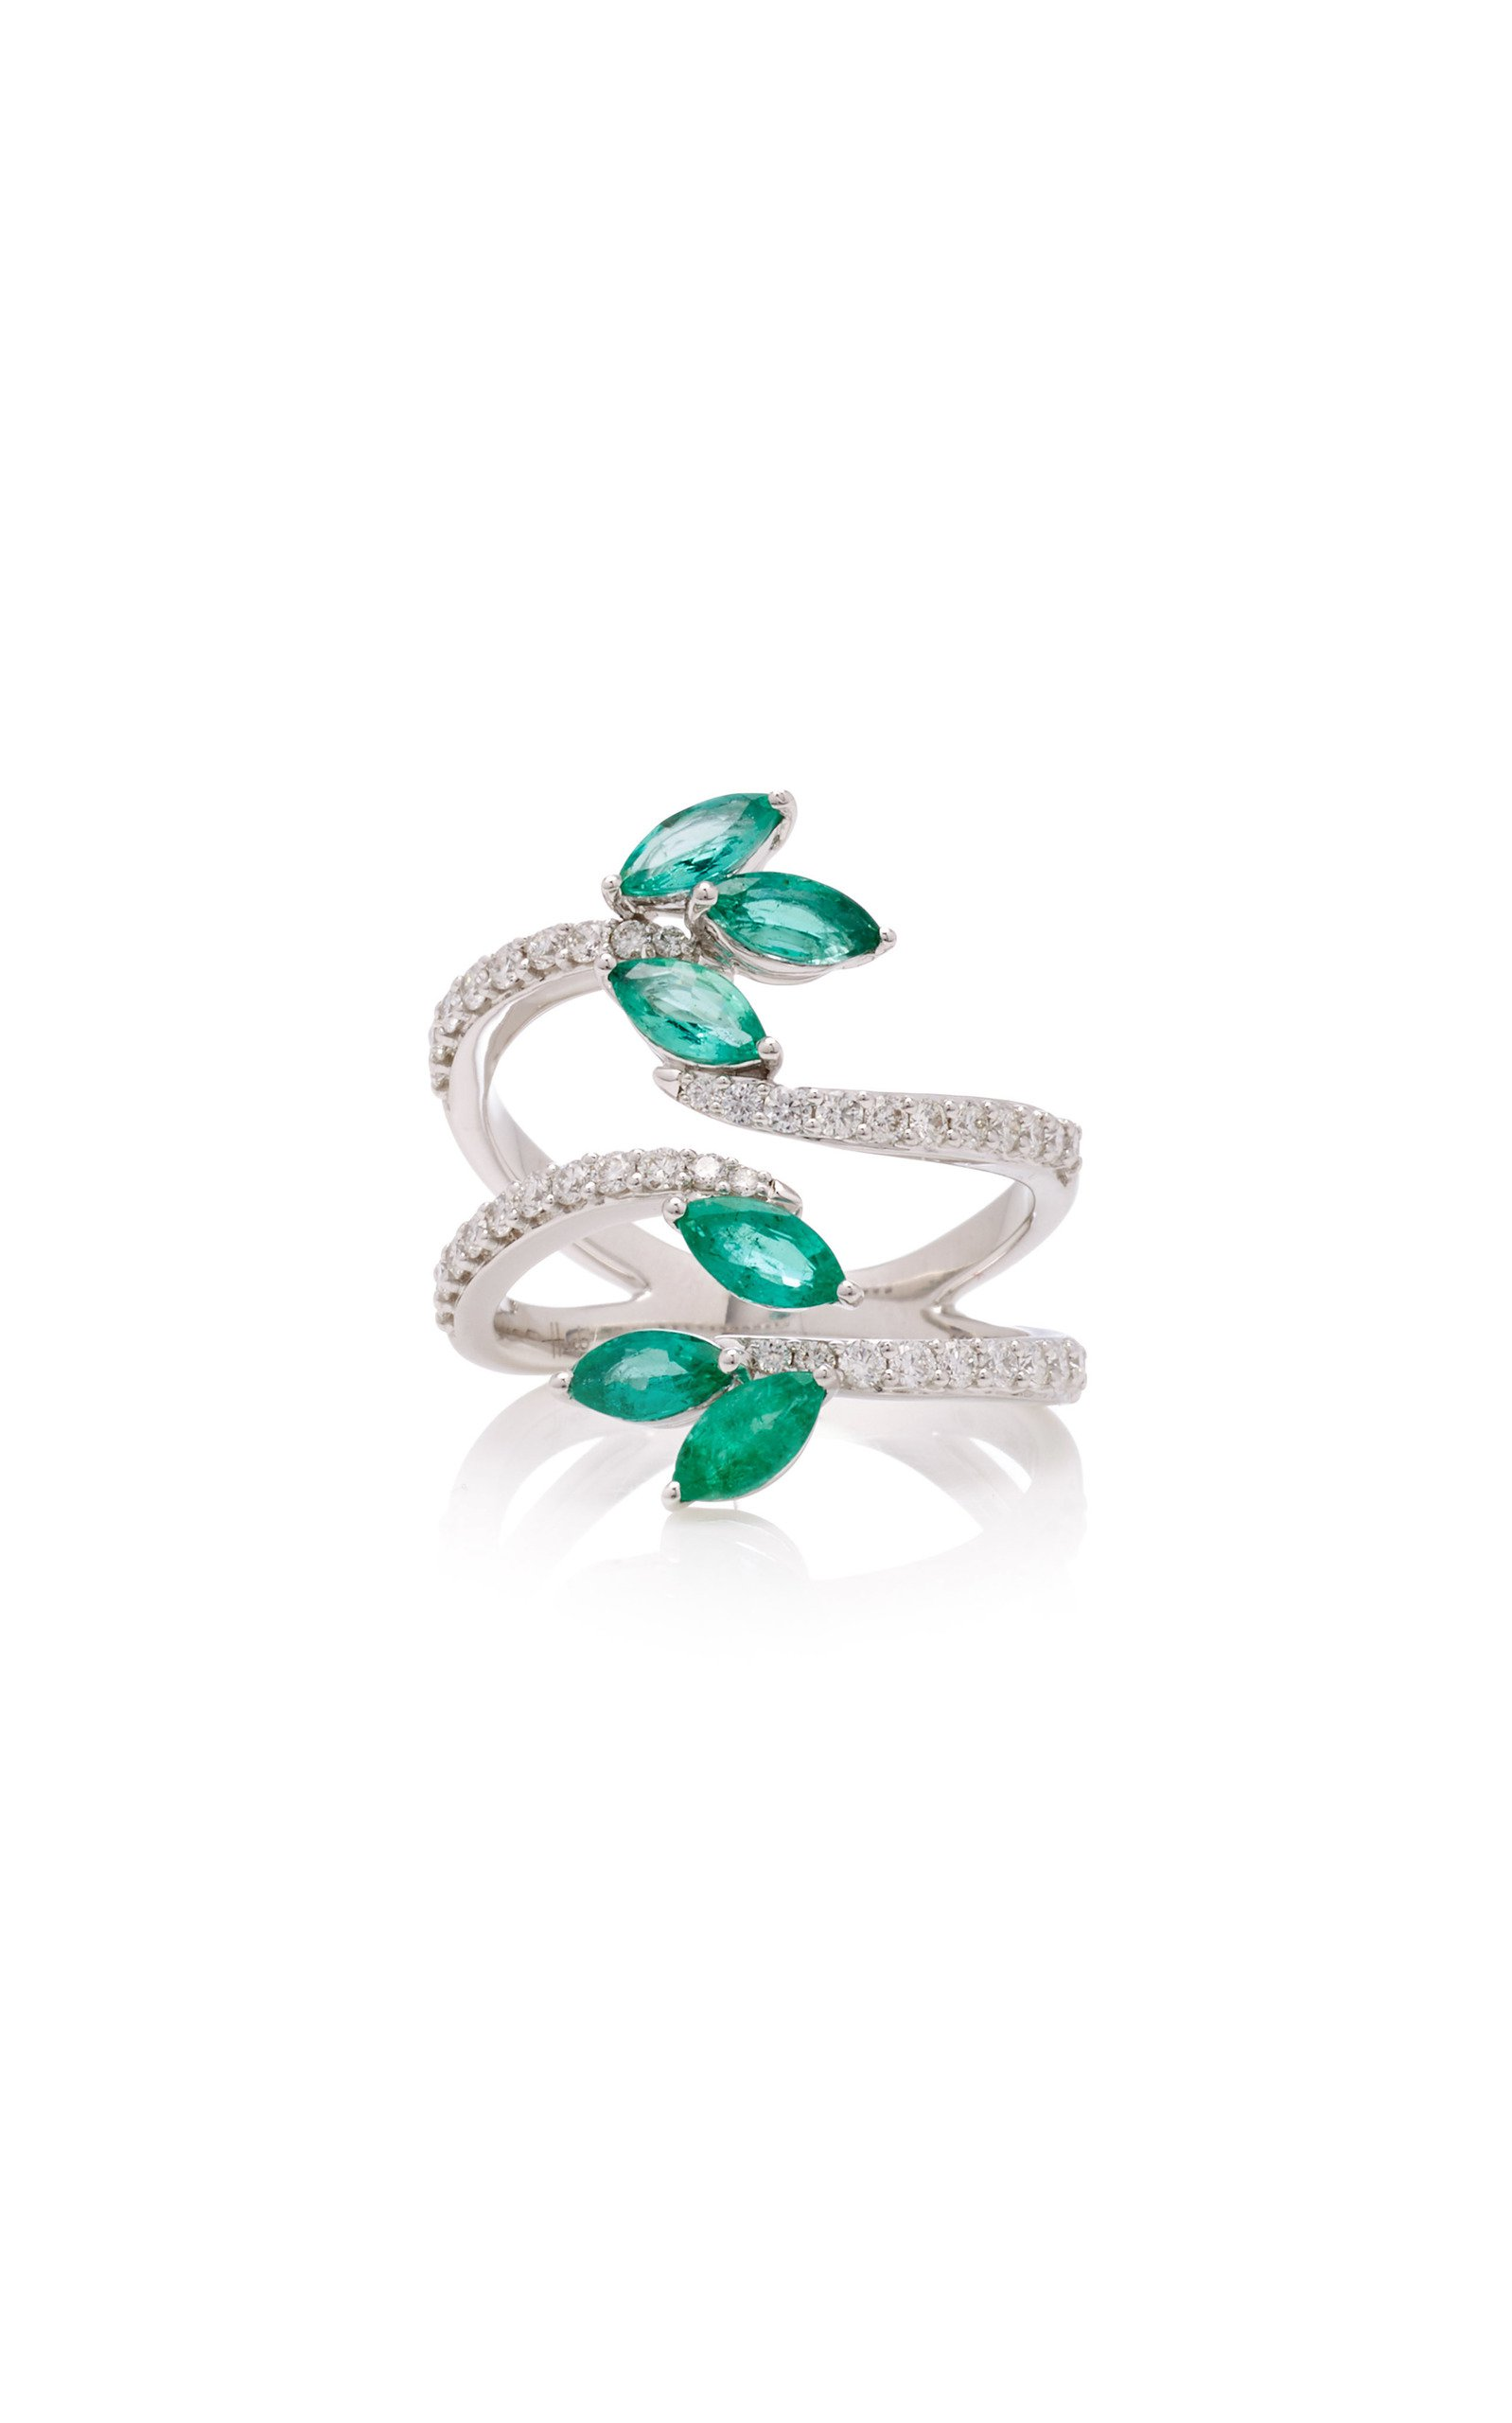 Hueb Exclusive 18K White Gold Emerald And Diamond Ring